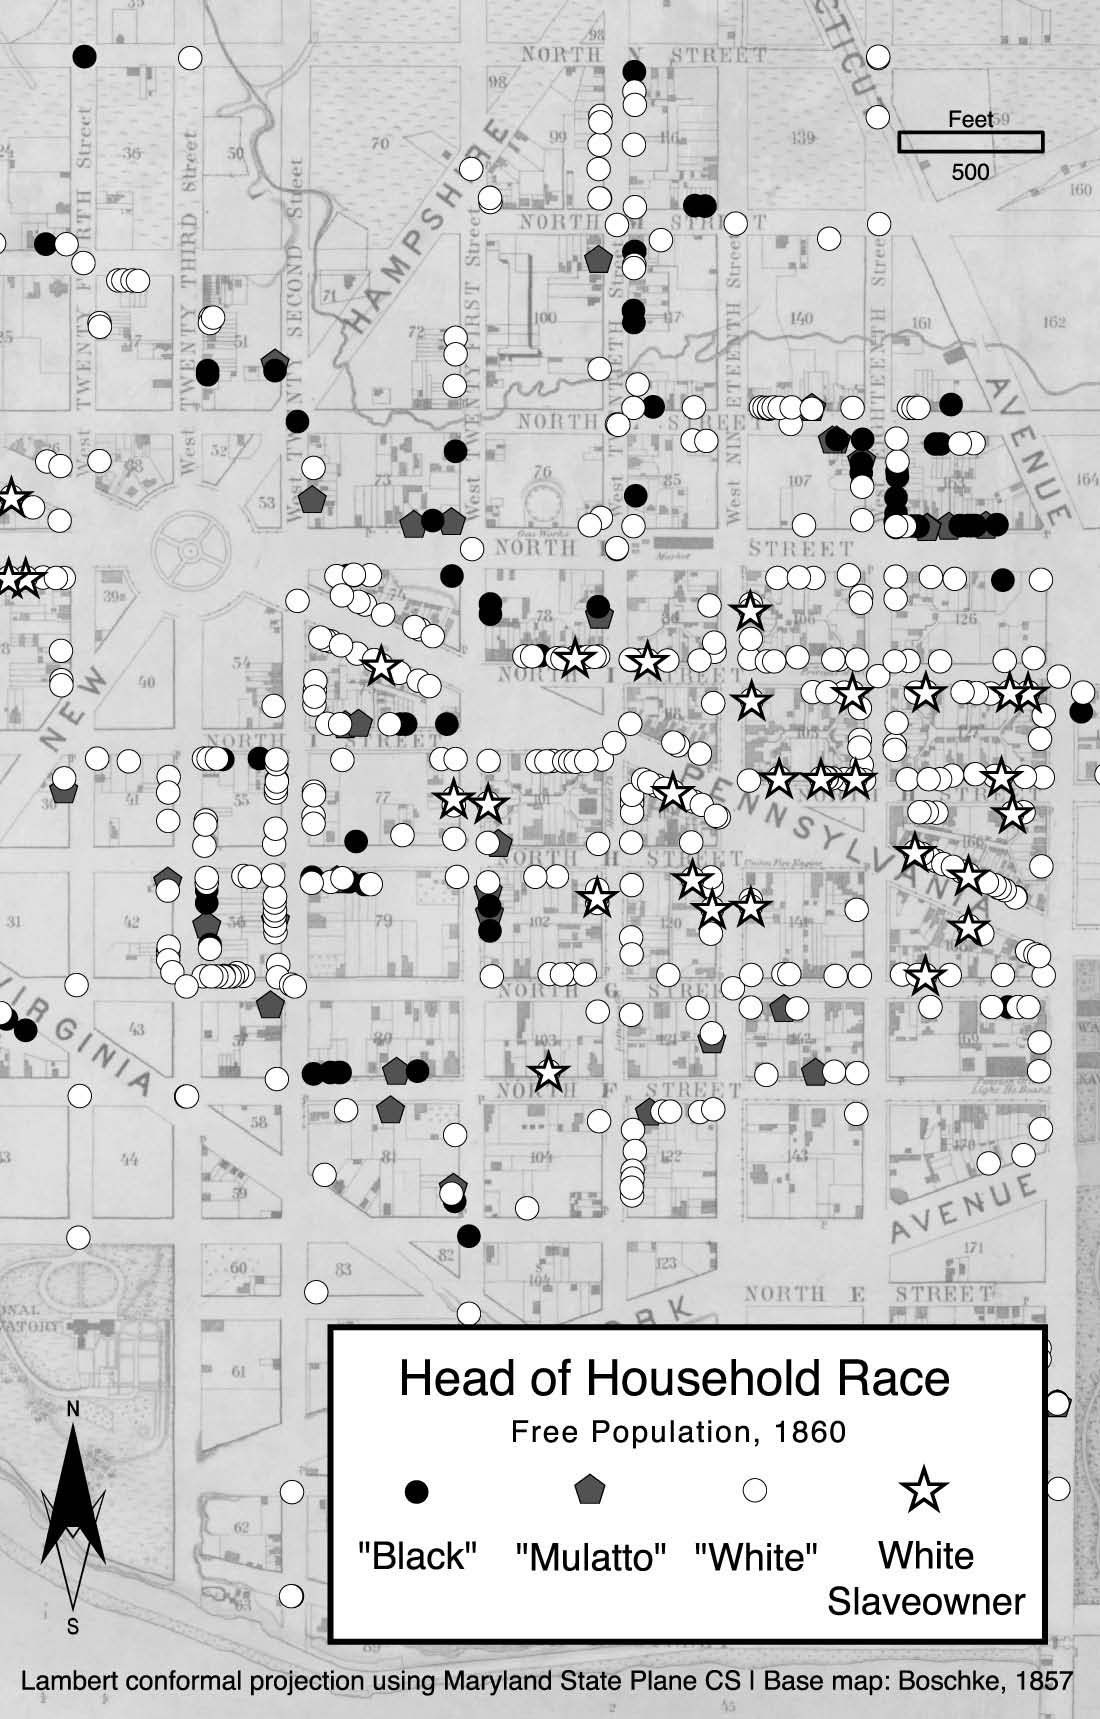 image showing head of household race including slave owners depicted on a map of